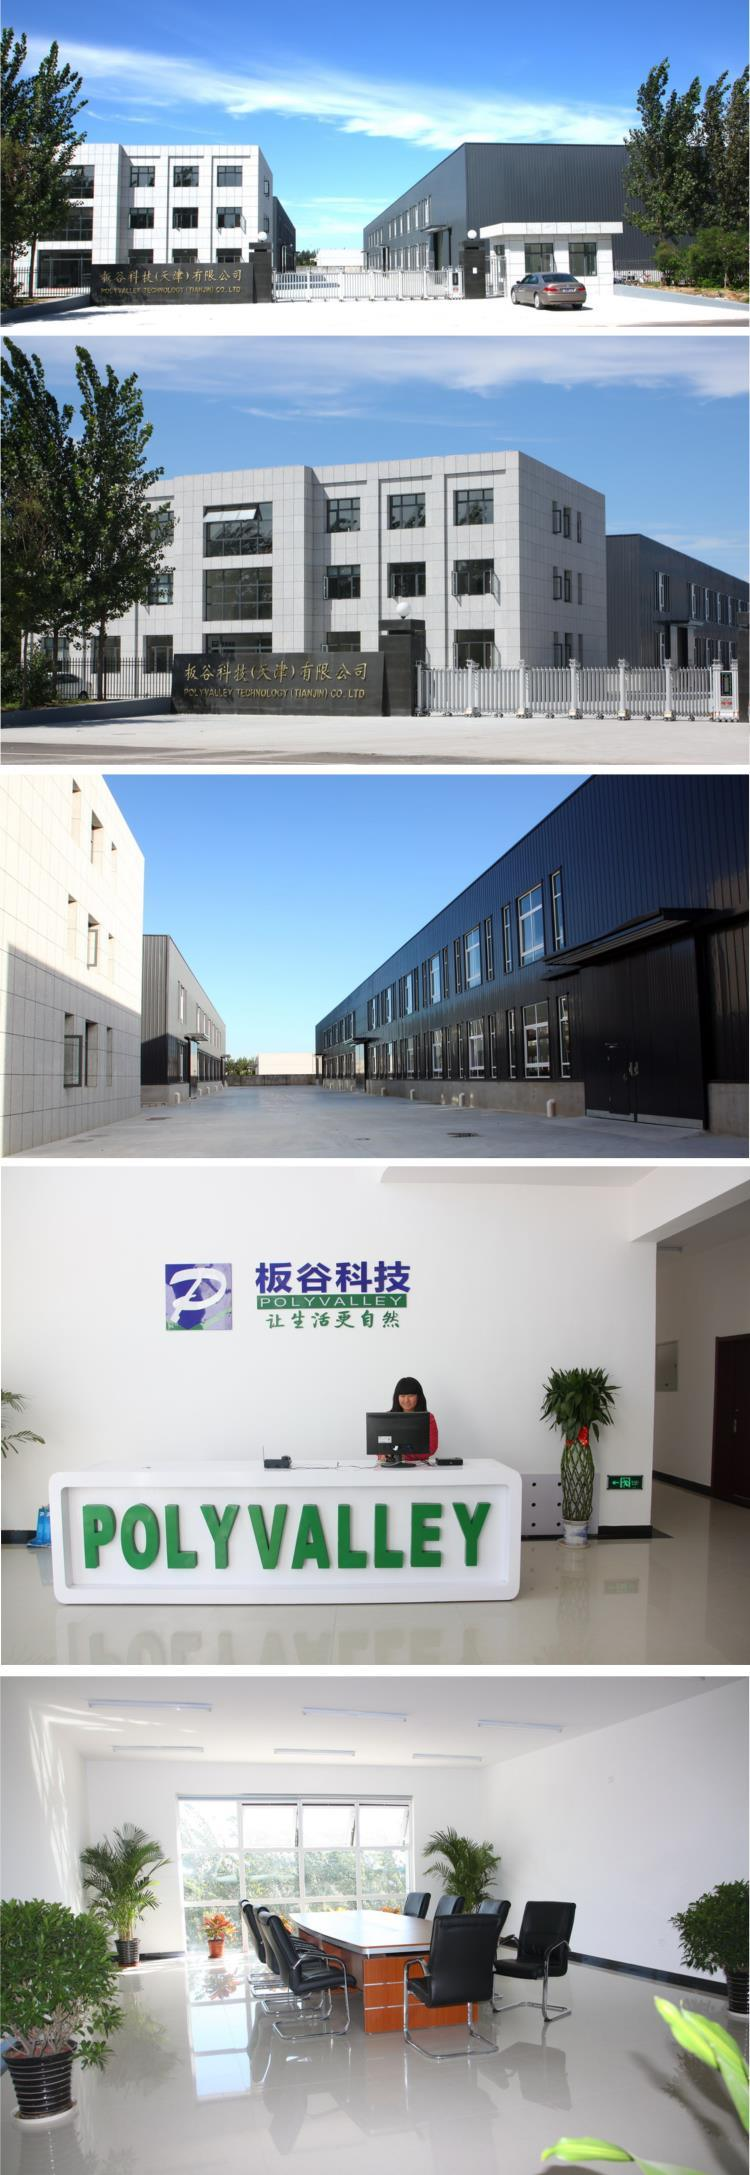 Polycarbonate Sheets Acrylic Sheet Solid Sheet Compact Sheets Manufacturer